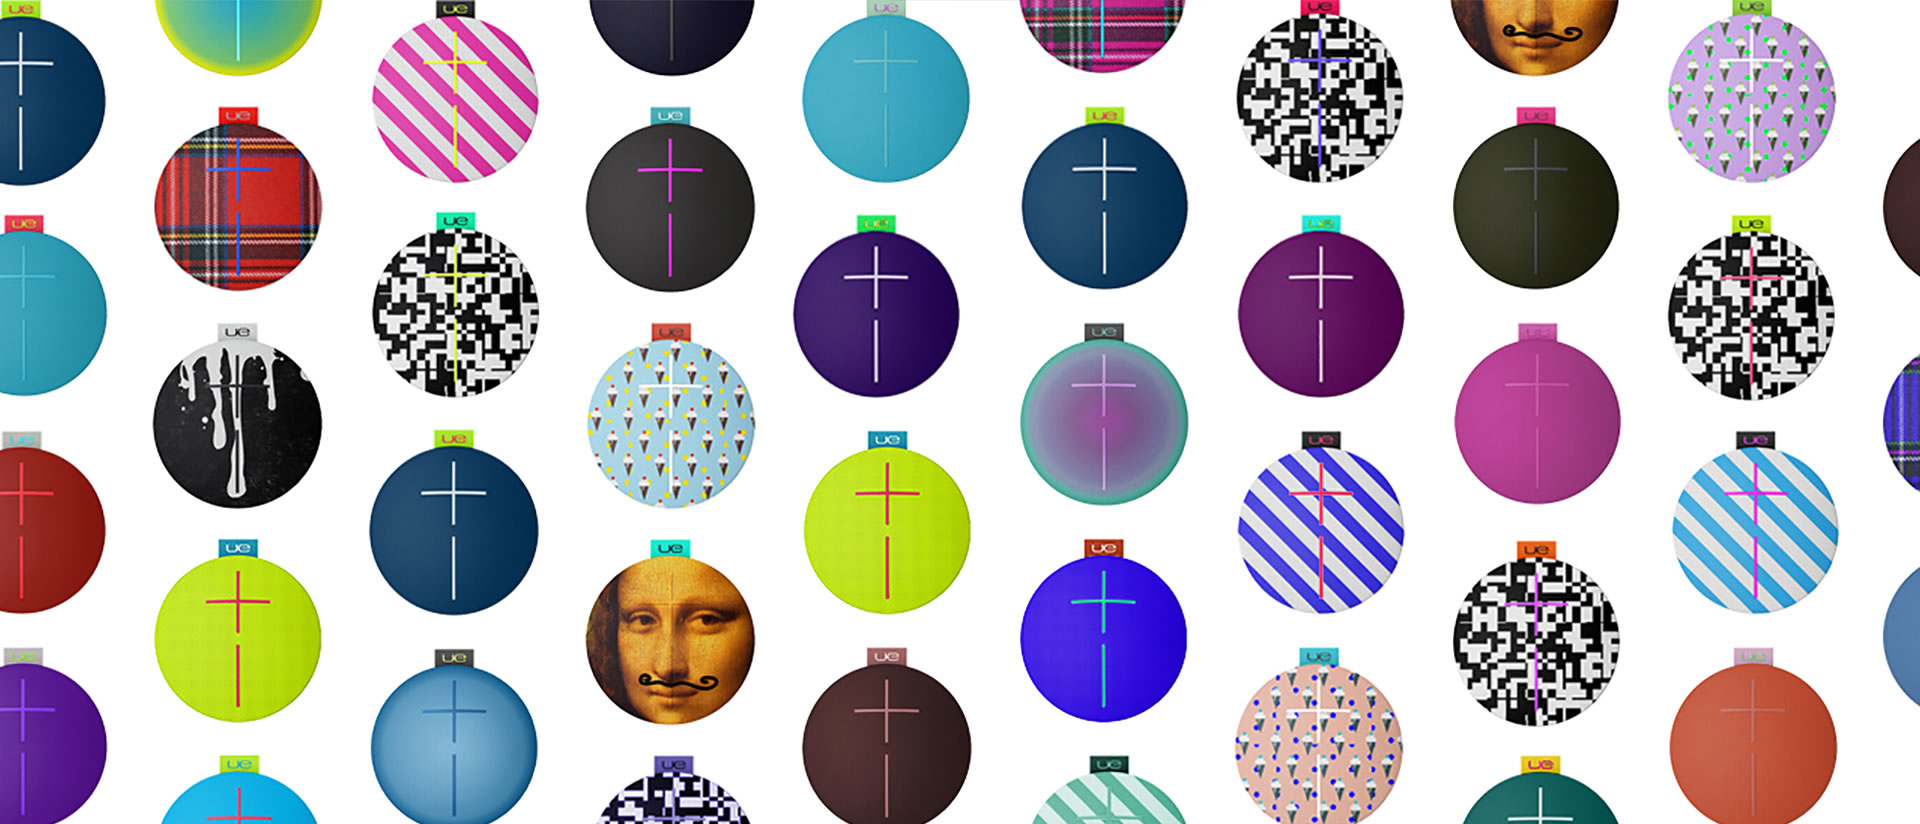 UE Roll mobile speakers fabric patterns and prints